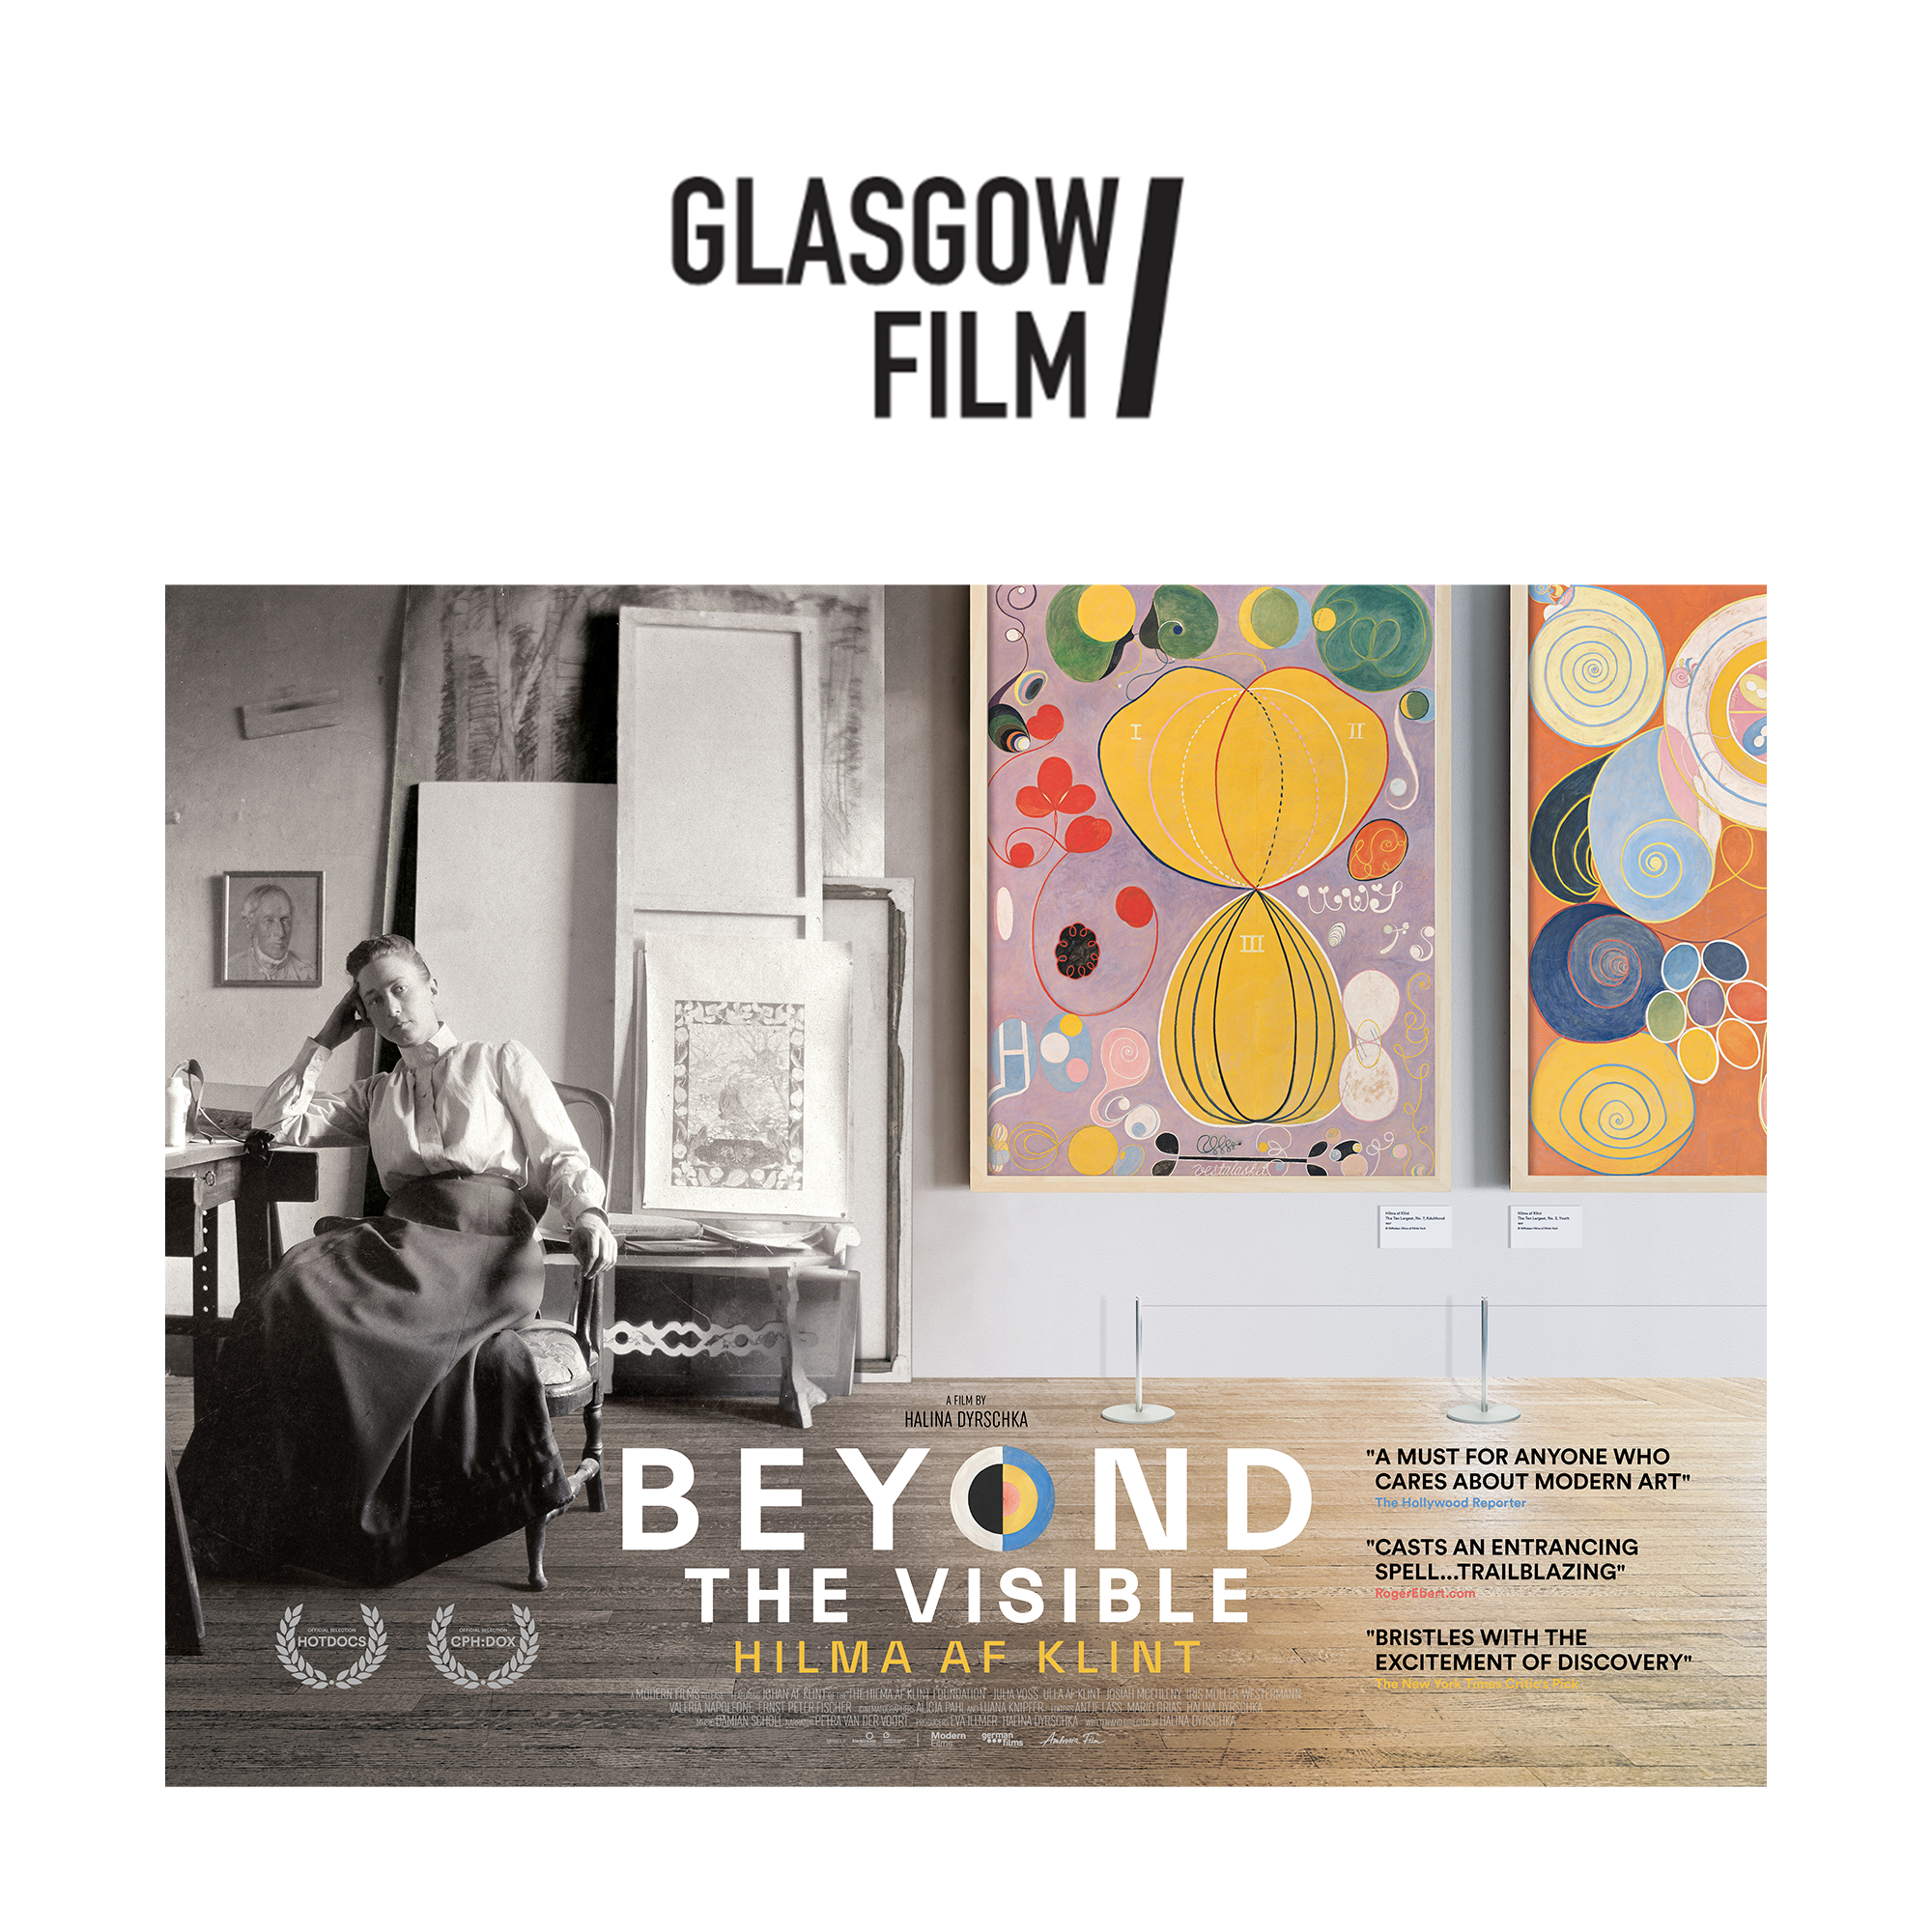 Beyond the Visible: Hilma af Klint at Glasgow Film Theatre